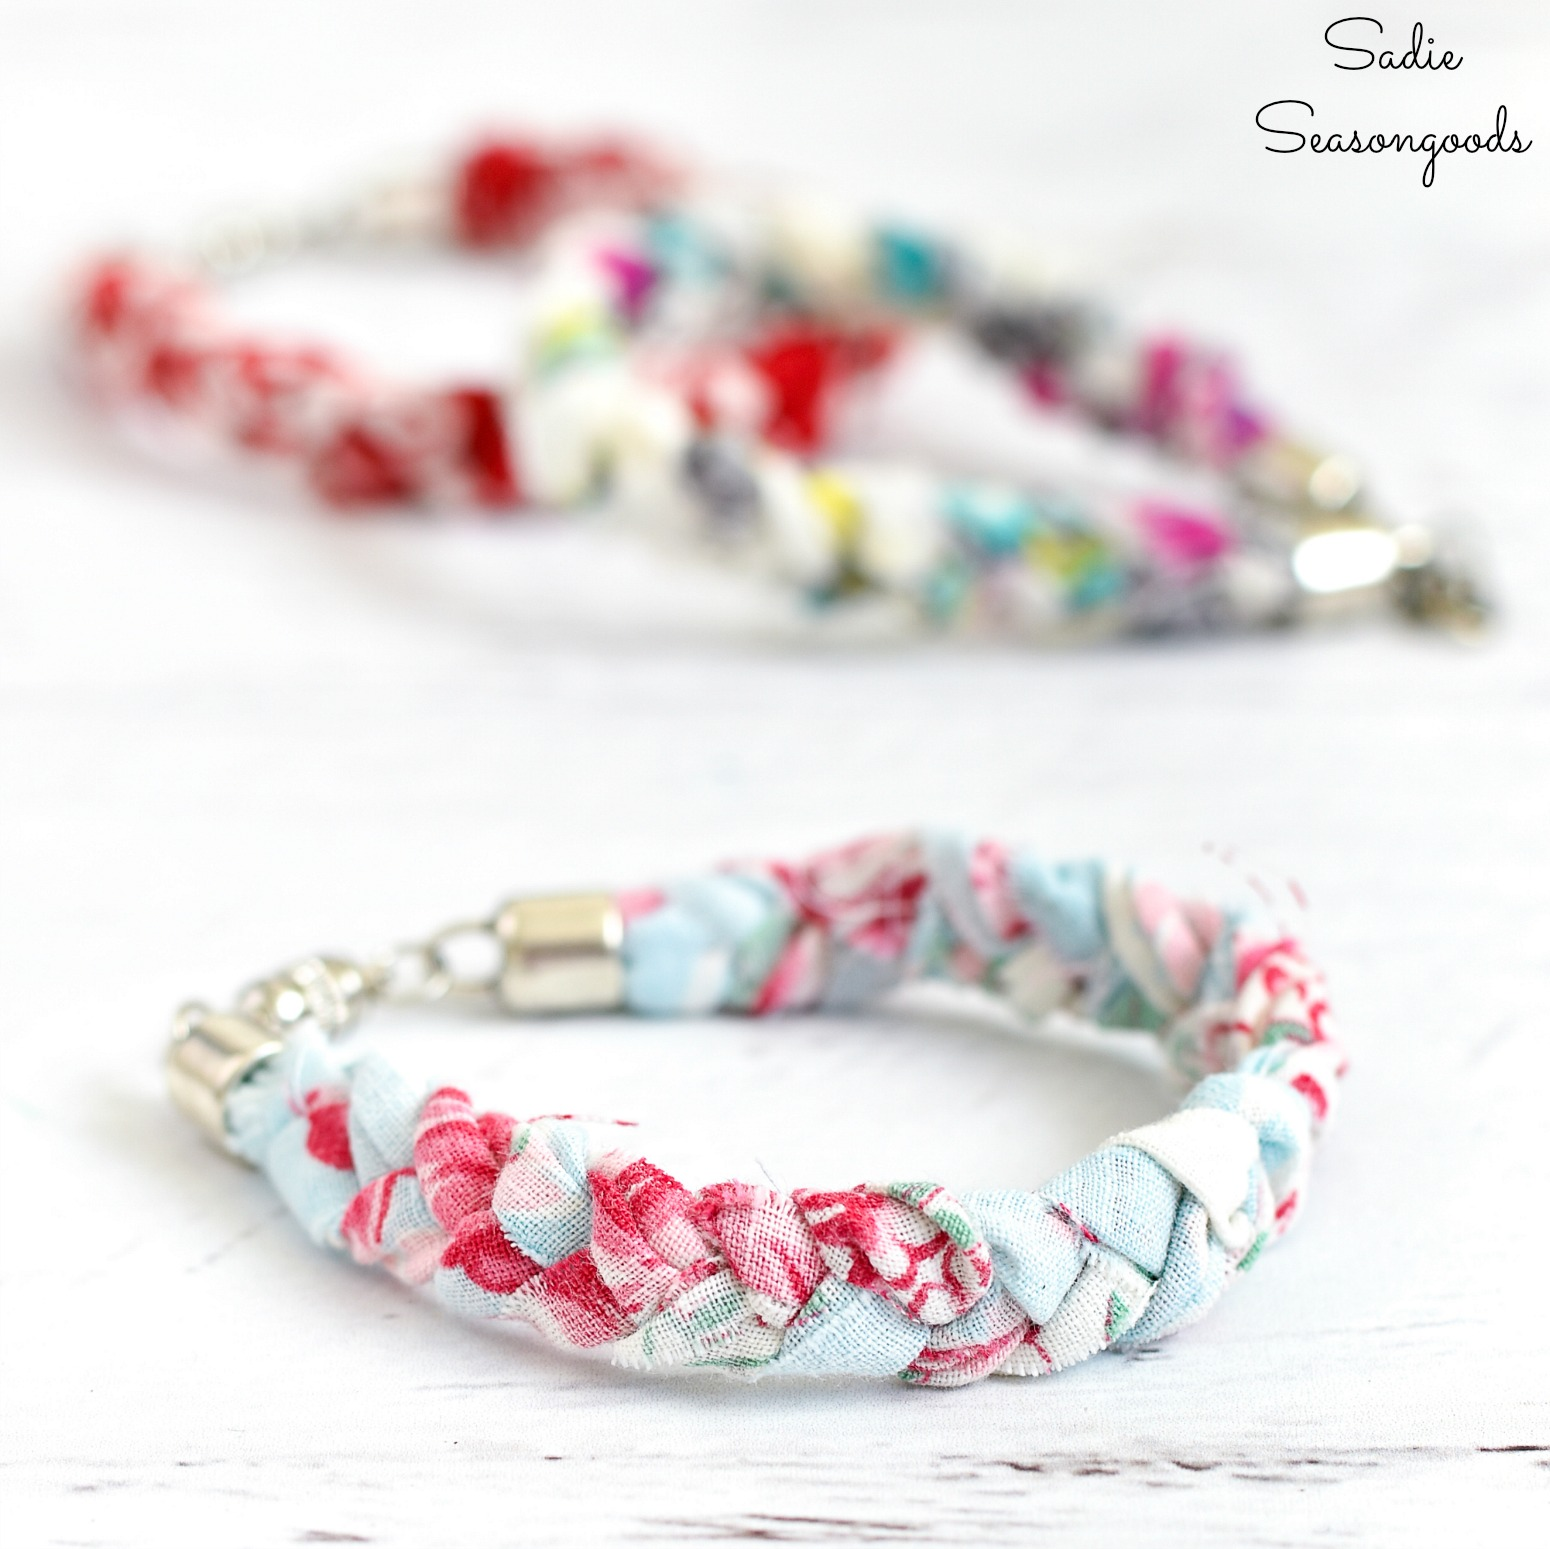 Boho bracelets that are vintage chic from vintage handkerchiefs